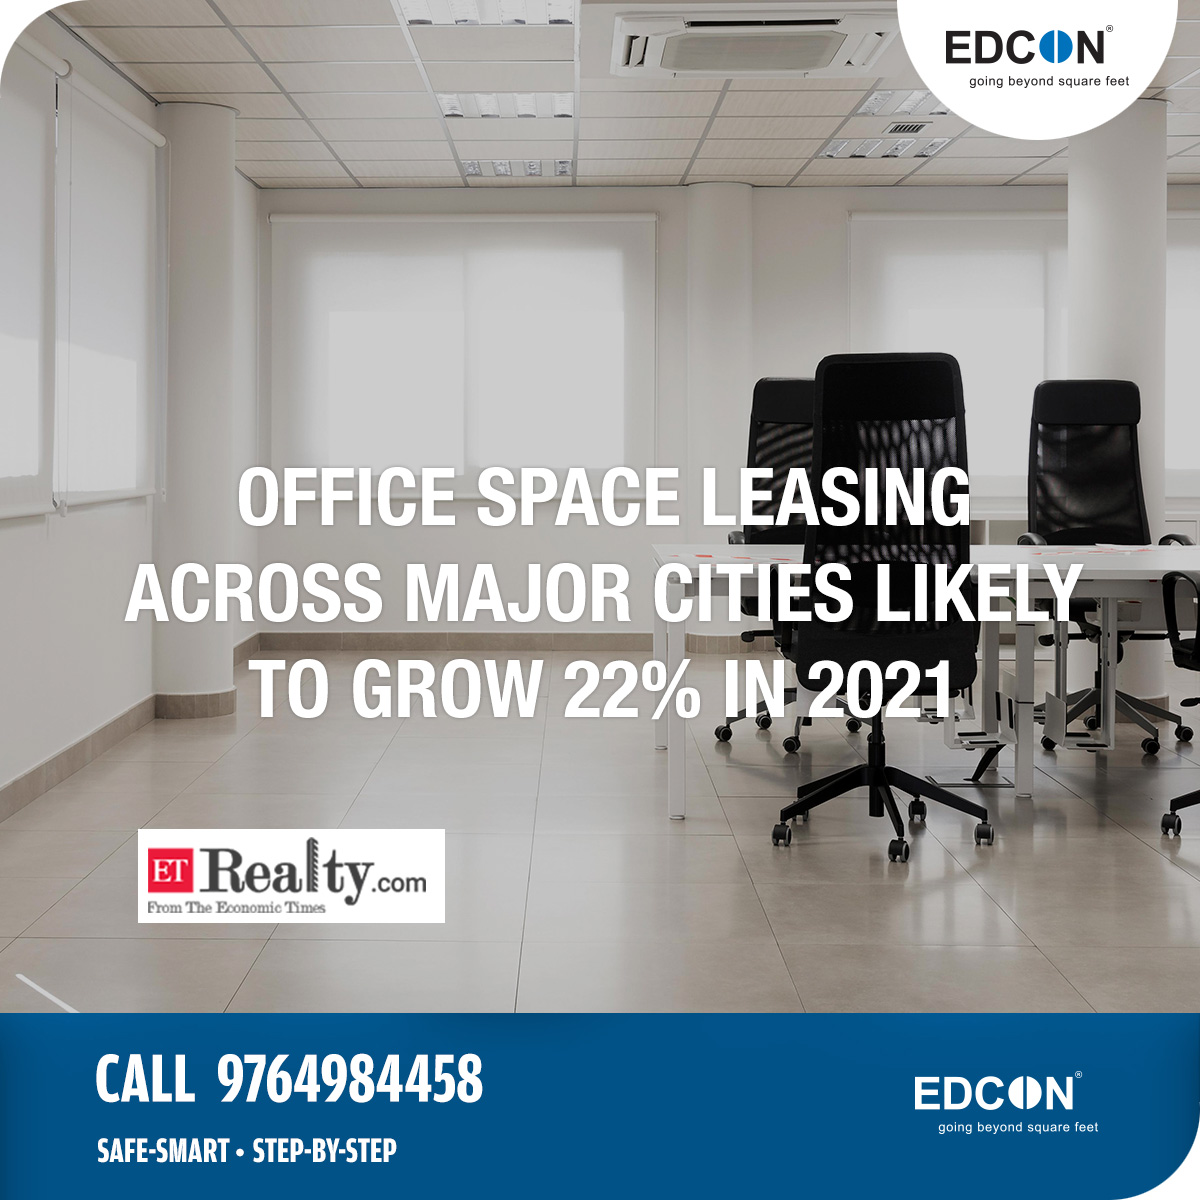 Office space leasing across India's major cities likely to grow 22% in 2021